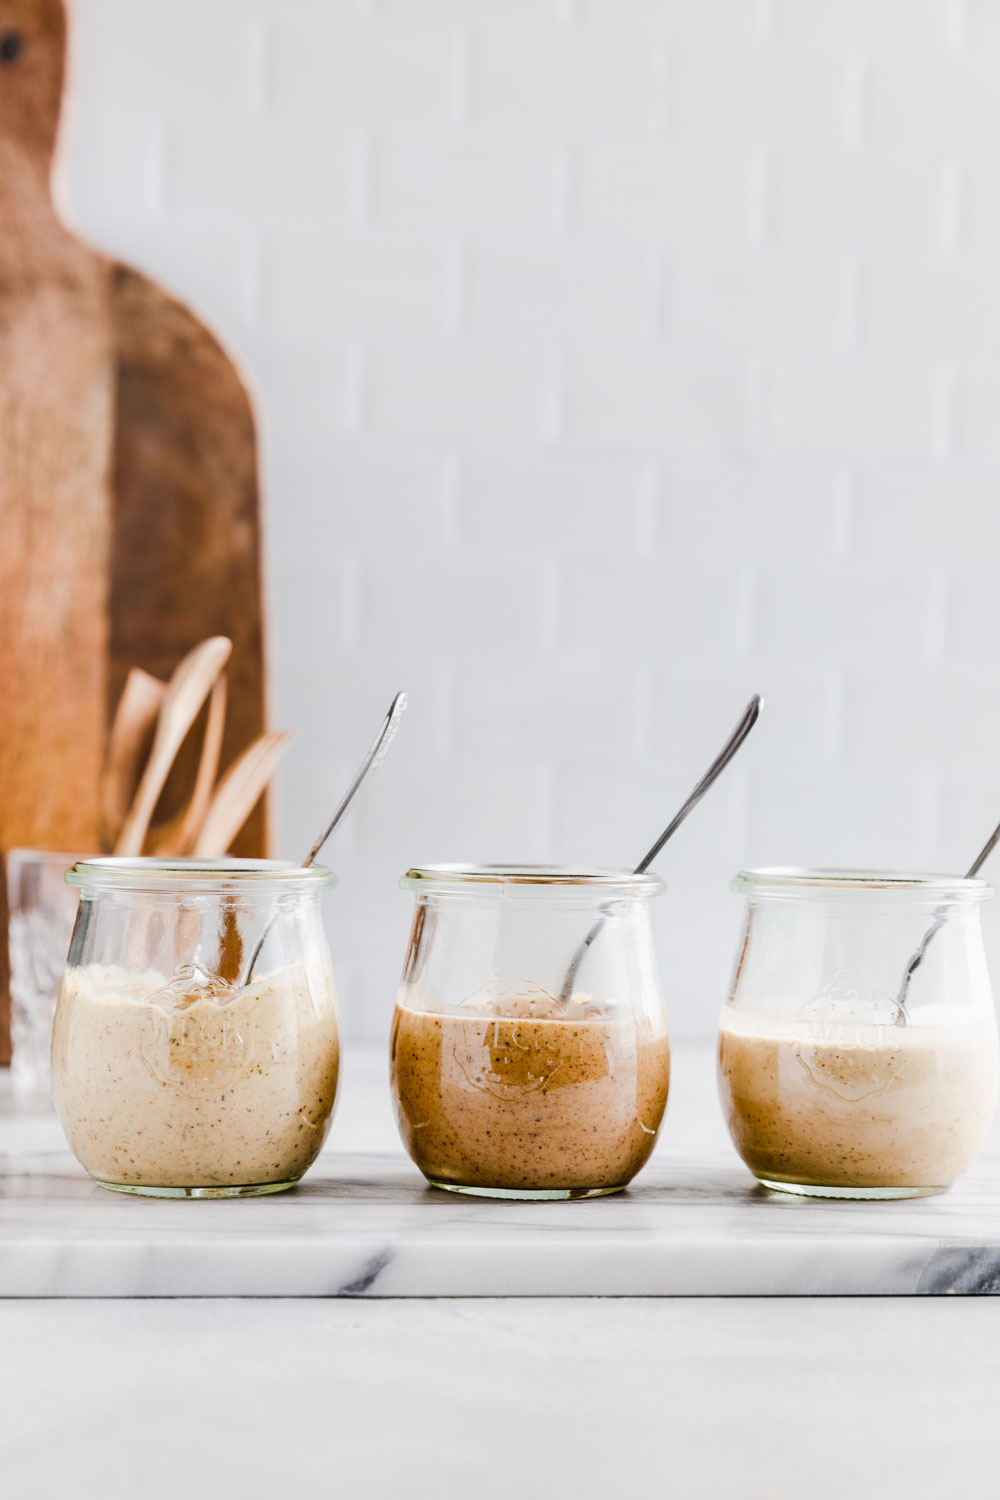 Three quinoa summer salad dressings next to eachother in small glass jars with a teaspoon on white marble and a light background with a wooden cutting board and wooden utensils in the background.